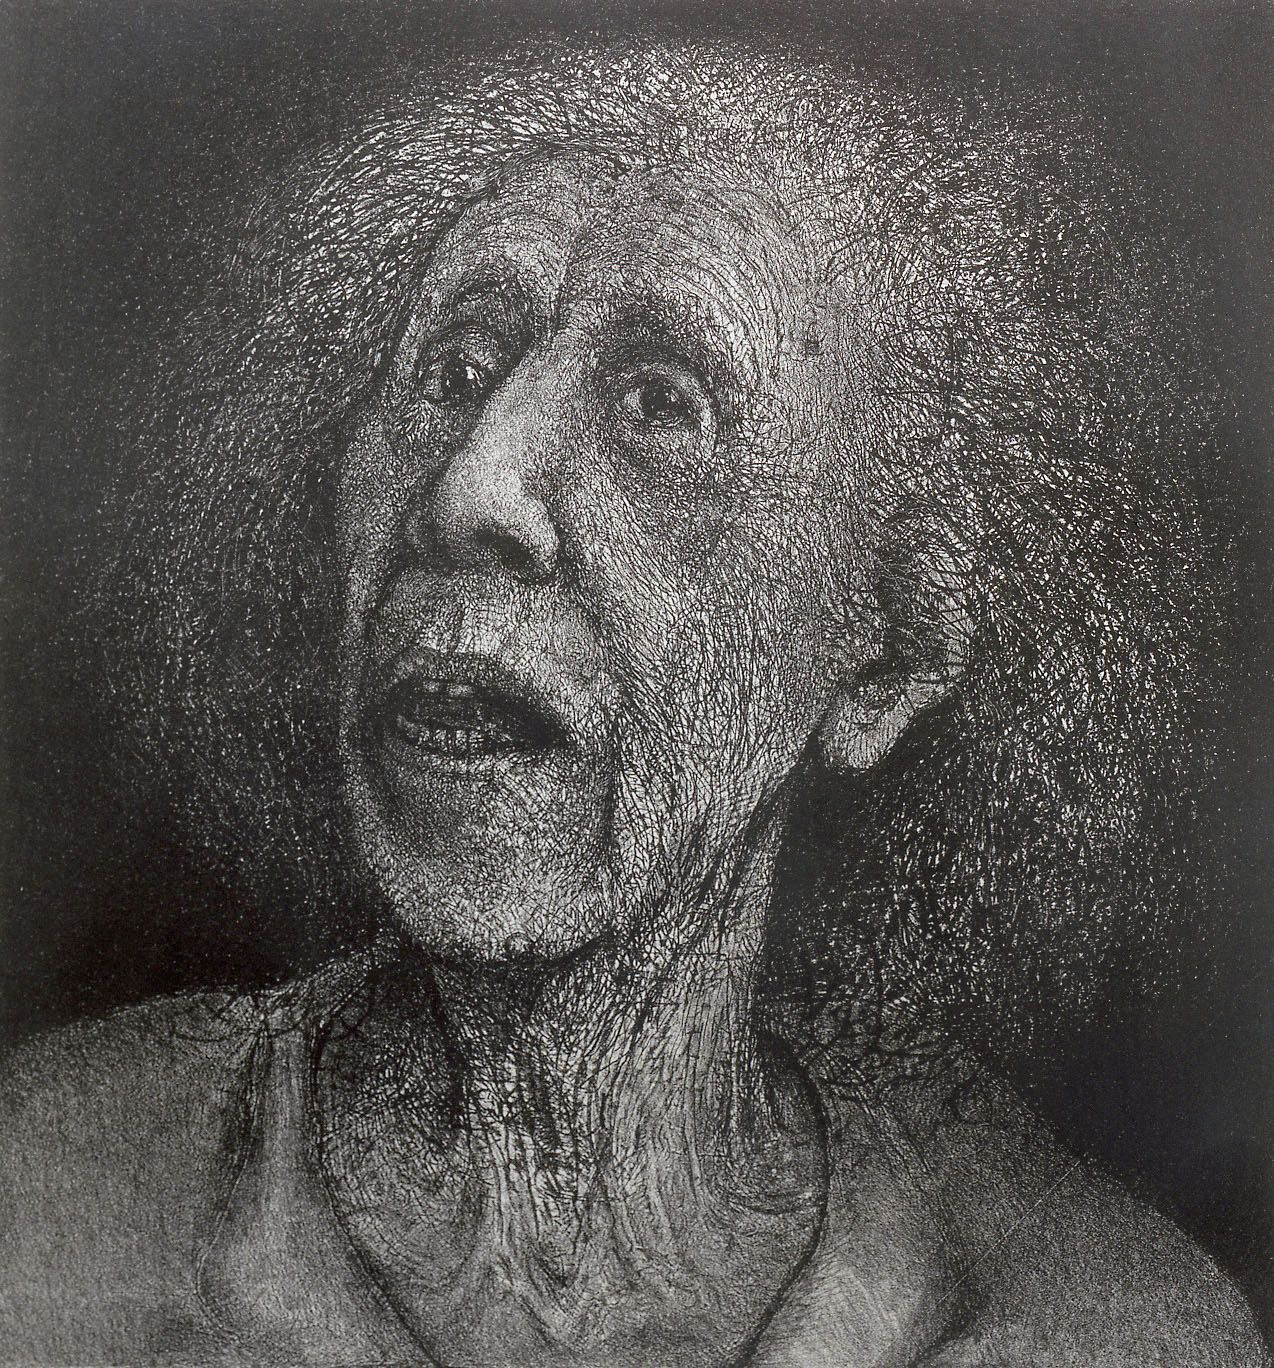 Gregory Gillespie, Untitled Drawing (Rita), 1984, pencil and ink on mylar with lightbox, 23 1/4 x 22 inches